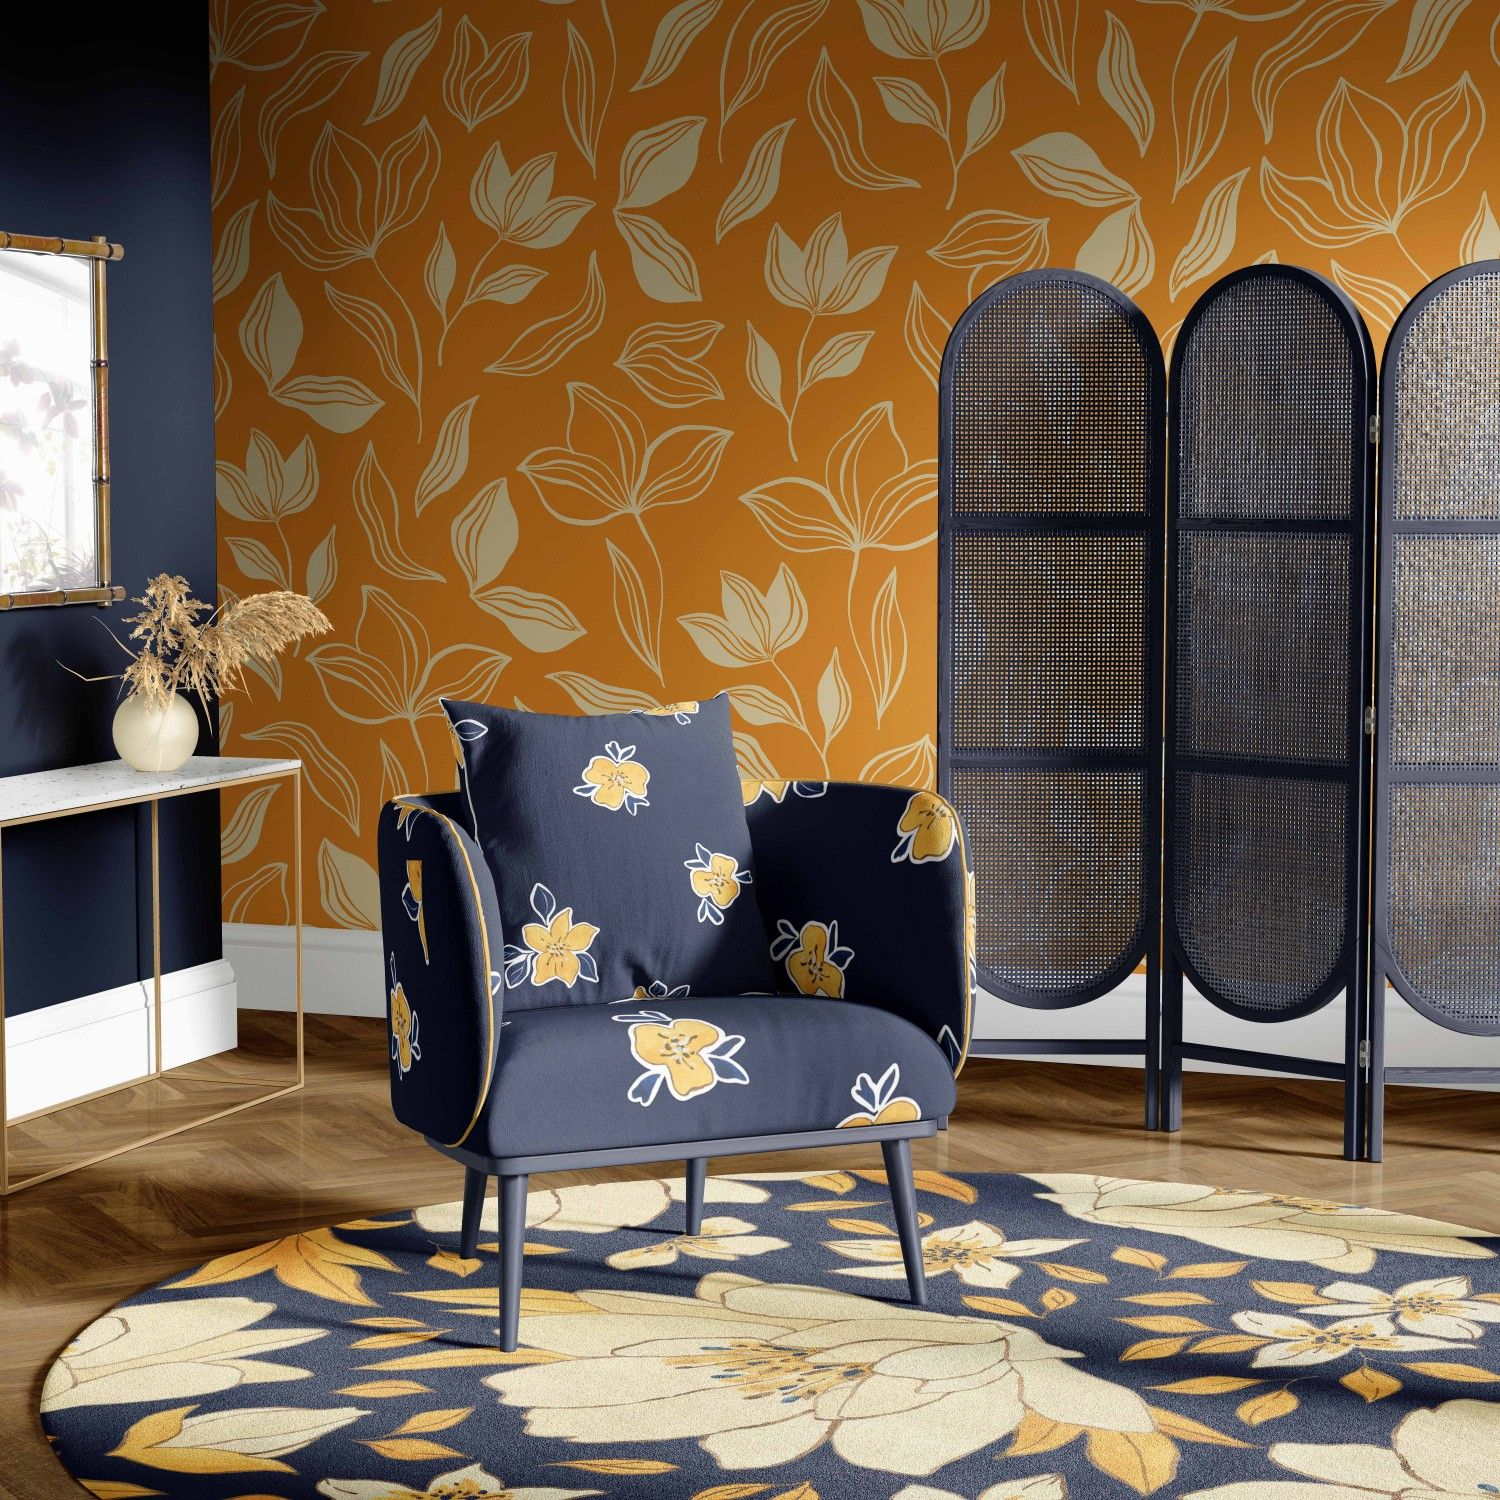 provence concept wallpaper rug upholstery